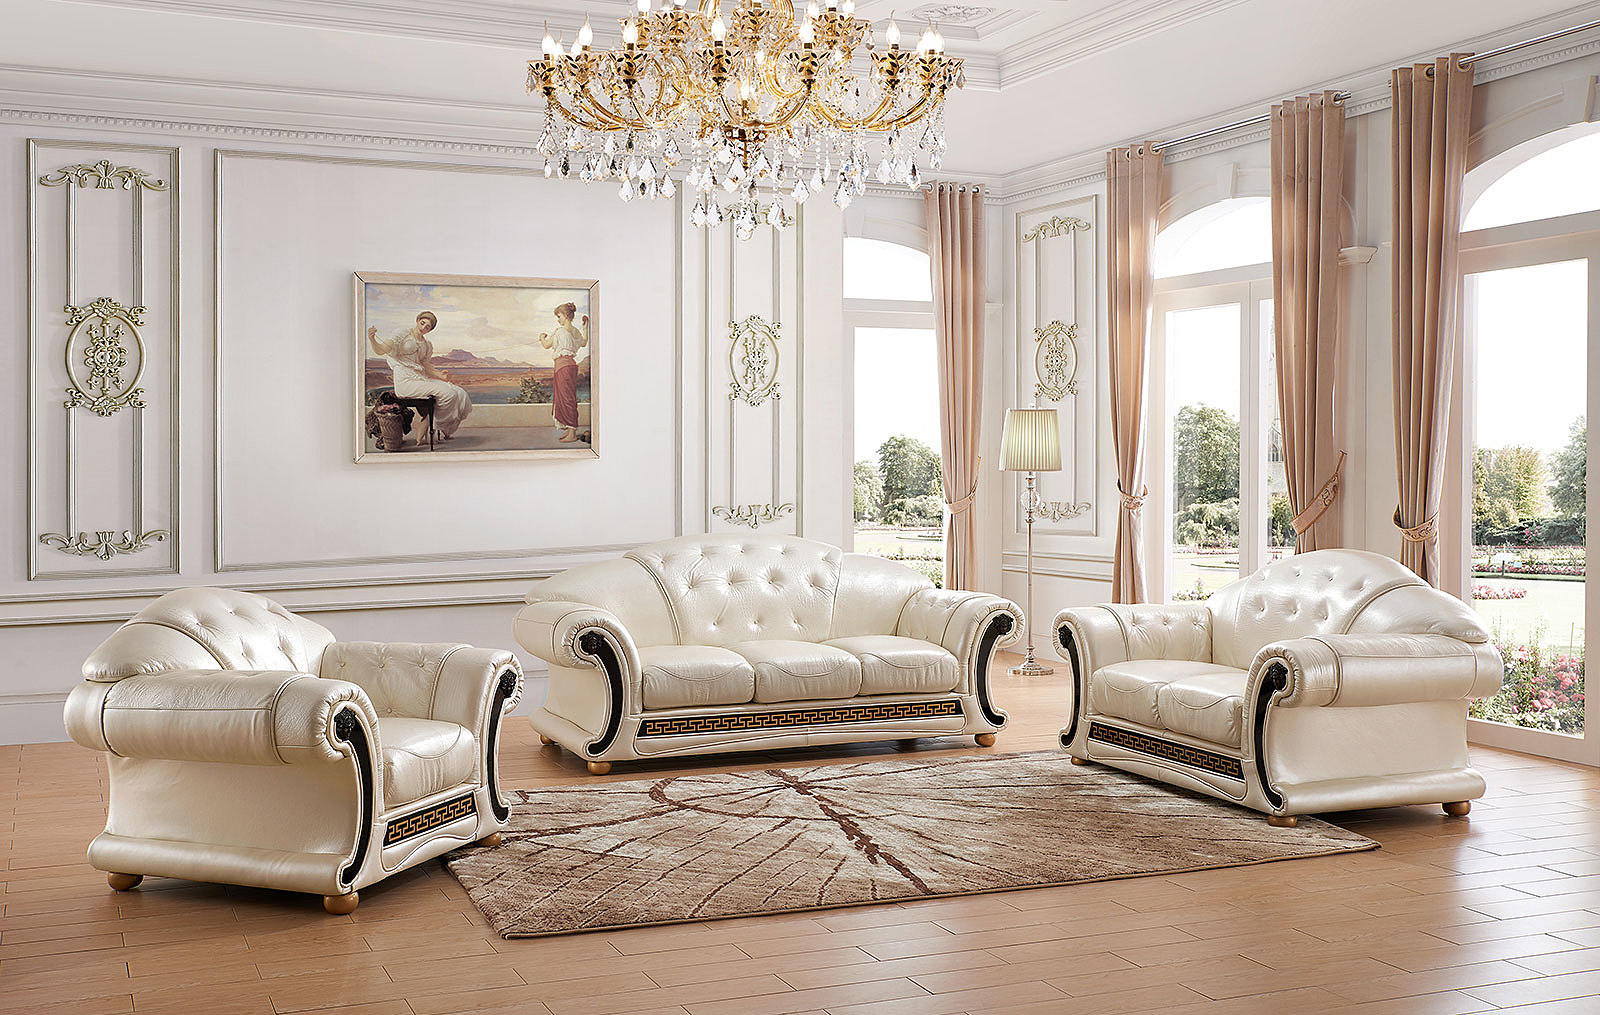 Apolo Pearl, Sofas Loveseats and Chairs, Living Room Furniture